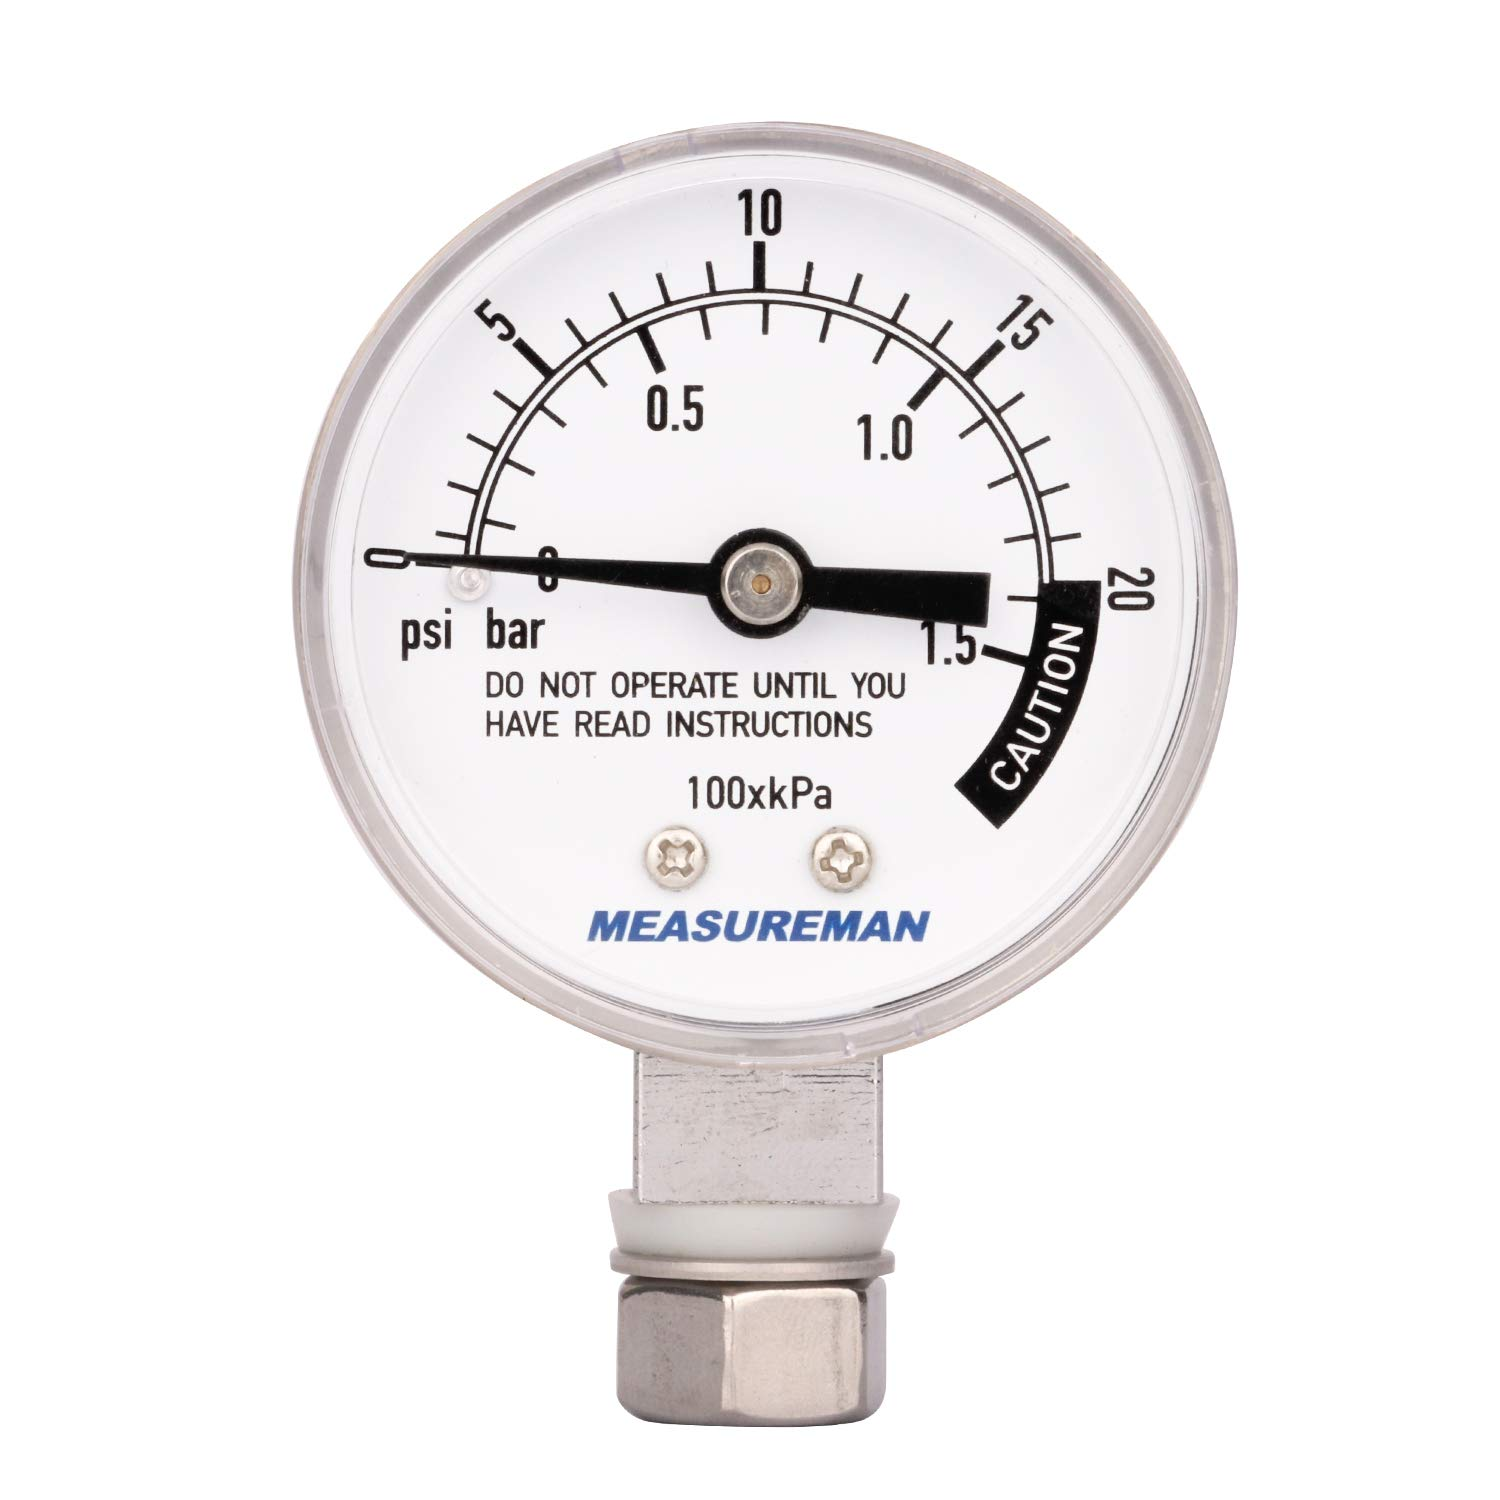 Measureman Stainless Steel Pressure Cooker Gauge, Pressure Canner Gauge, Steam Pressure Gauge, 2